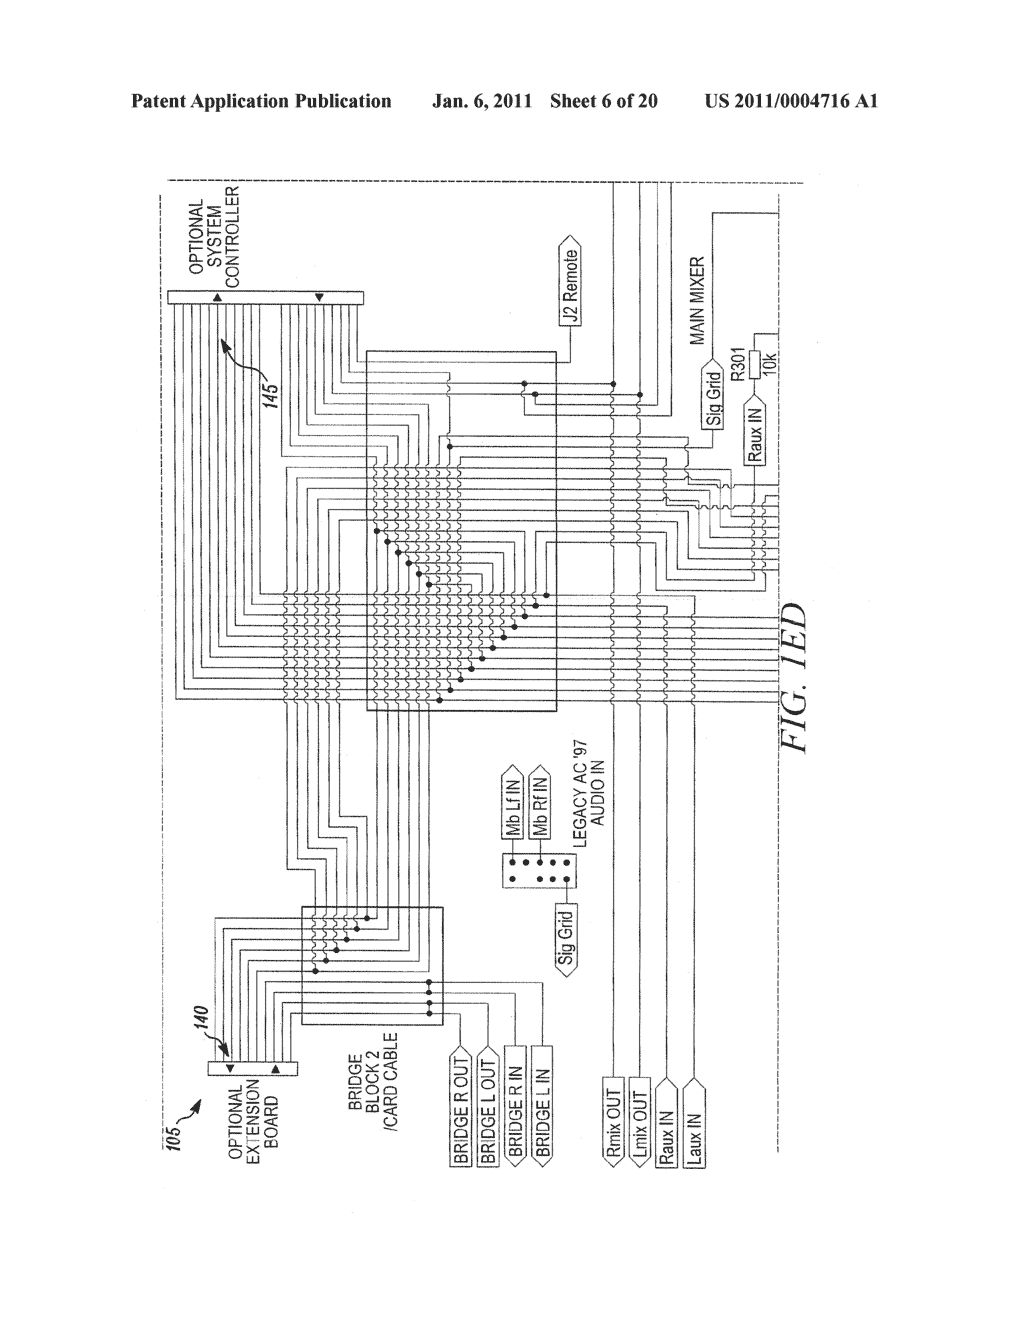 Discrete Lateral Mosfet Power Amplifier Expansion Card Diagram Circuit Diagrams Schematic And Image 07